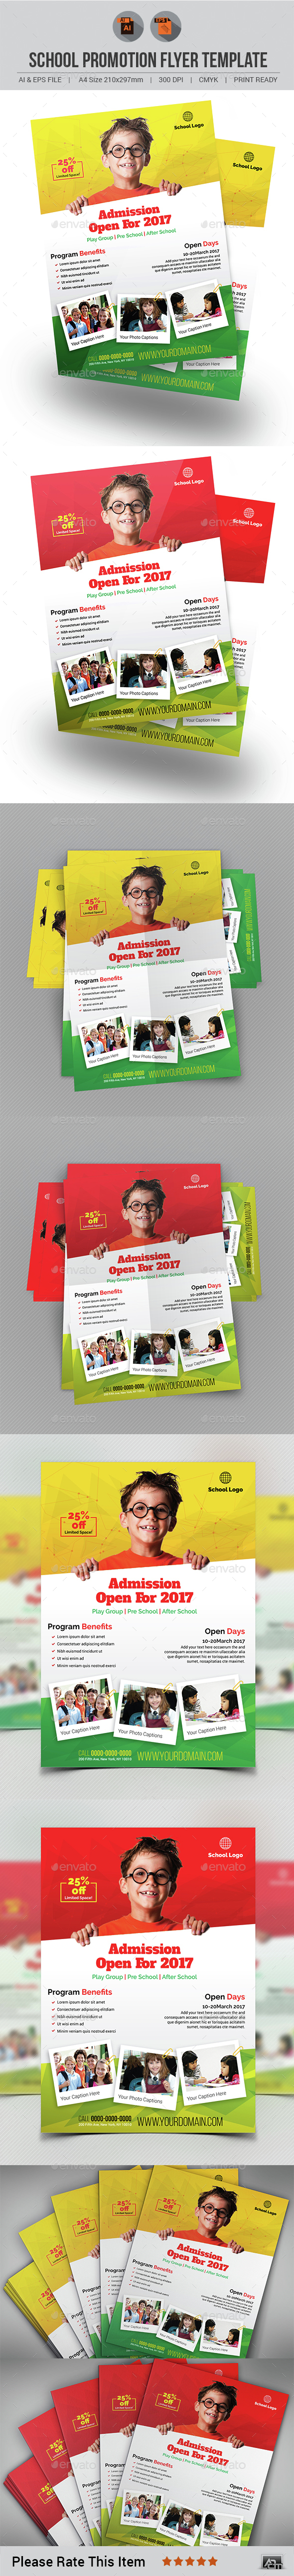 School Promotion Flyer Template - Corporate Flyers